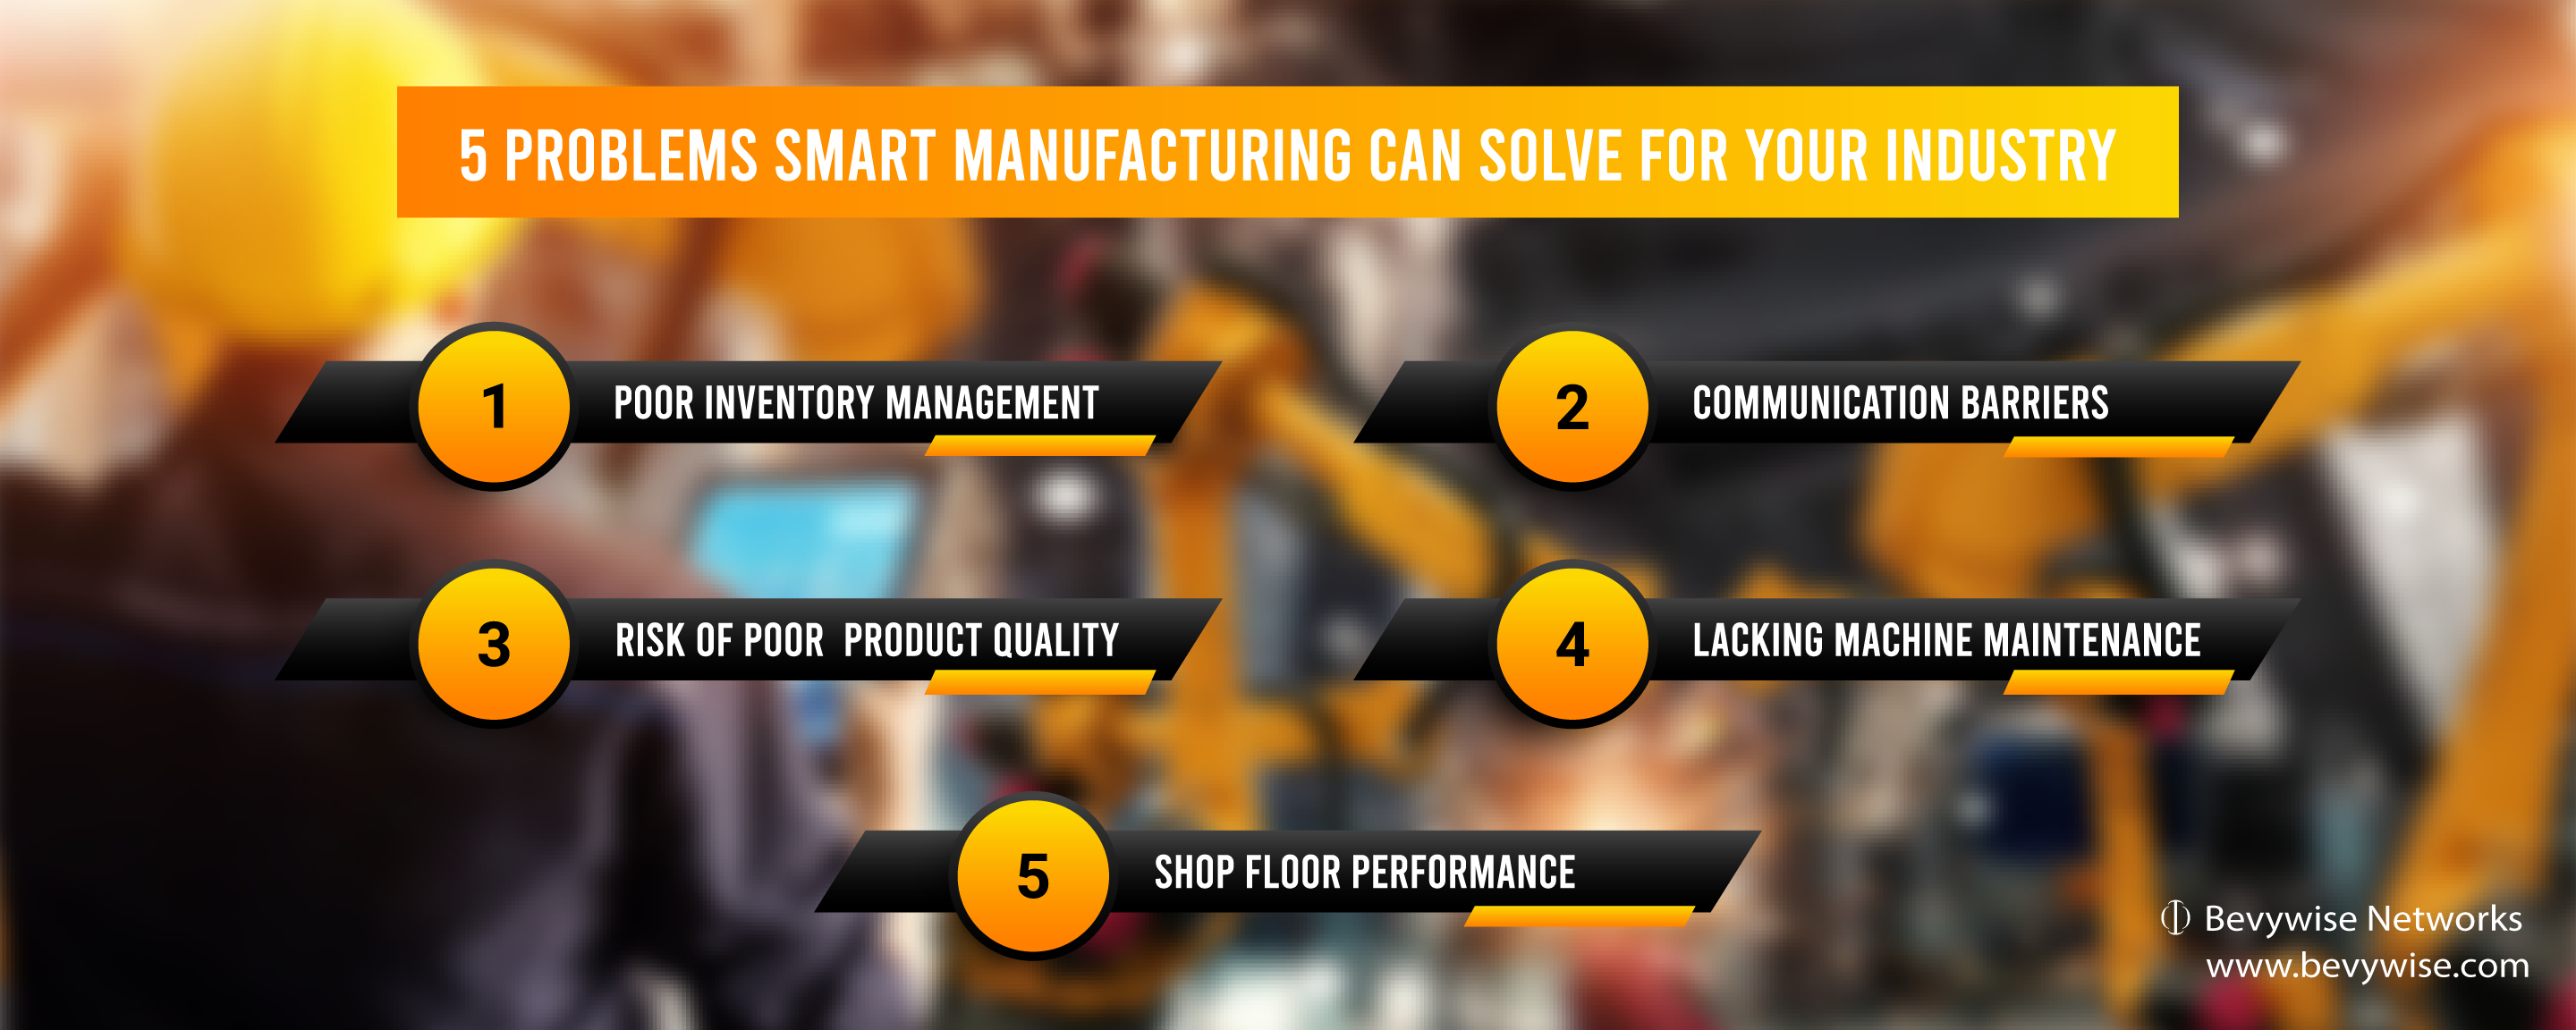 5 Problems Smart Manufacturing can solve for your Industry